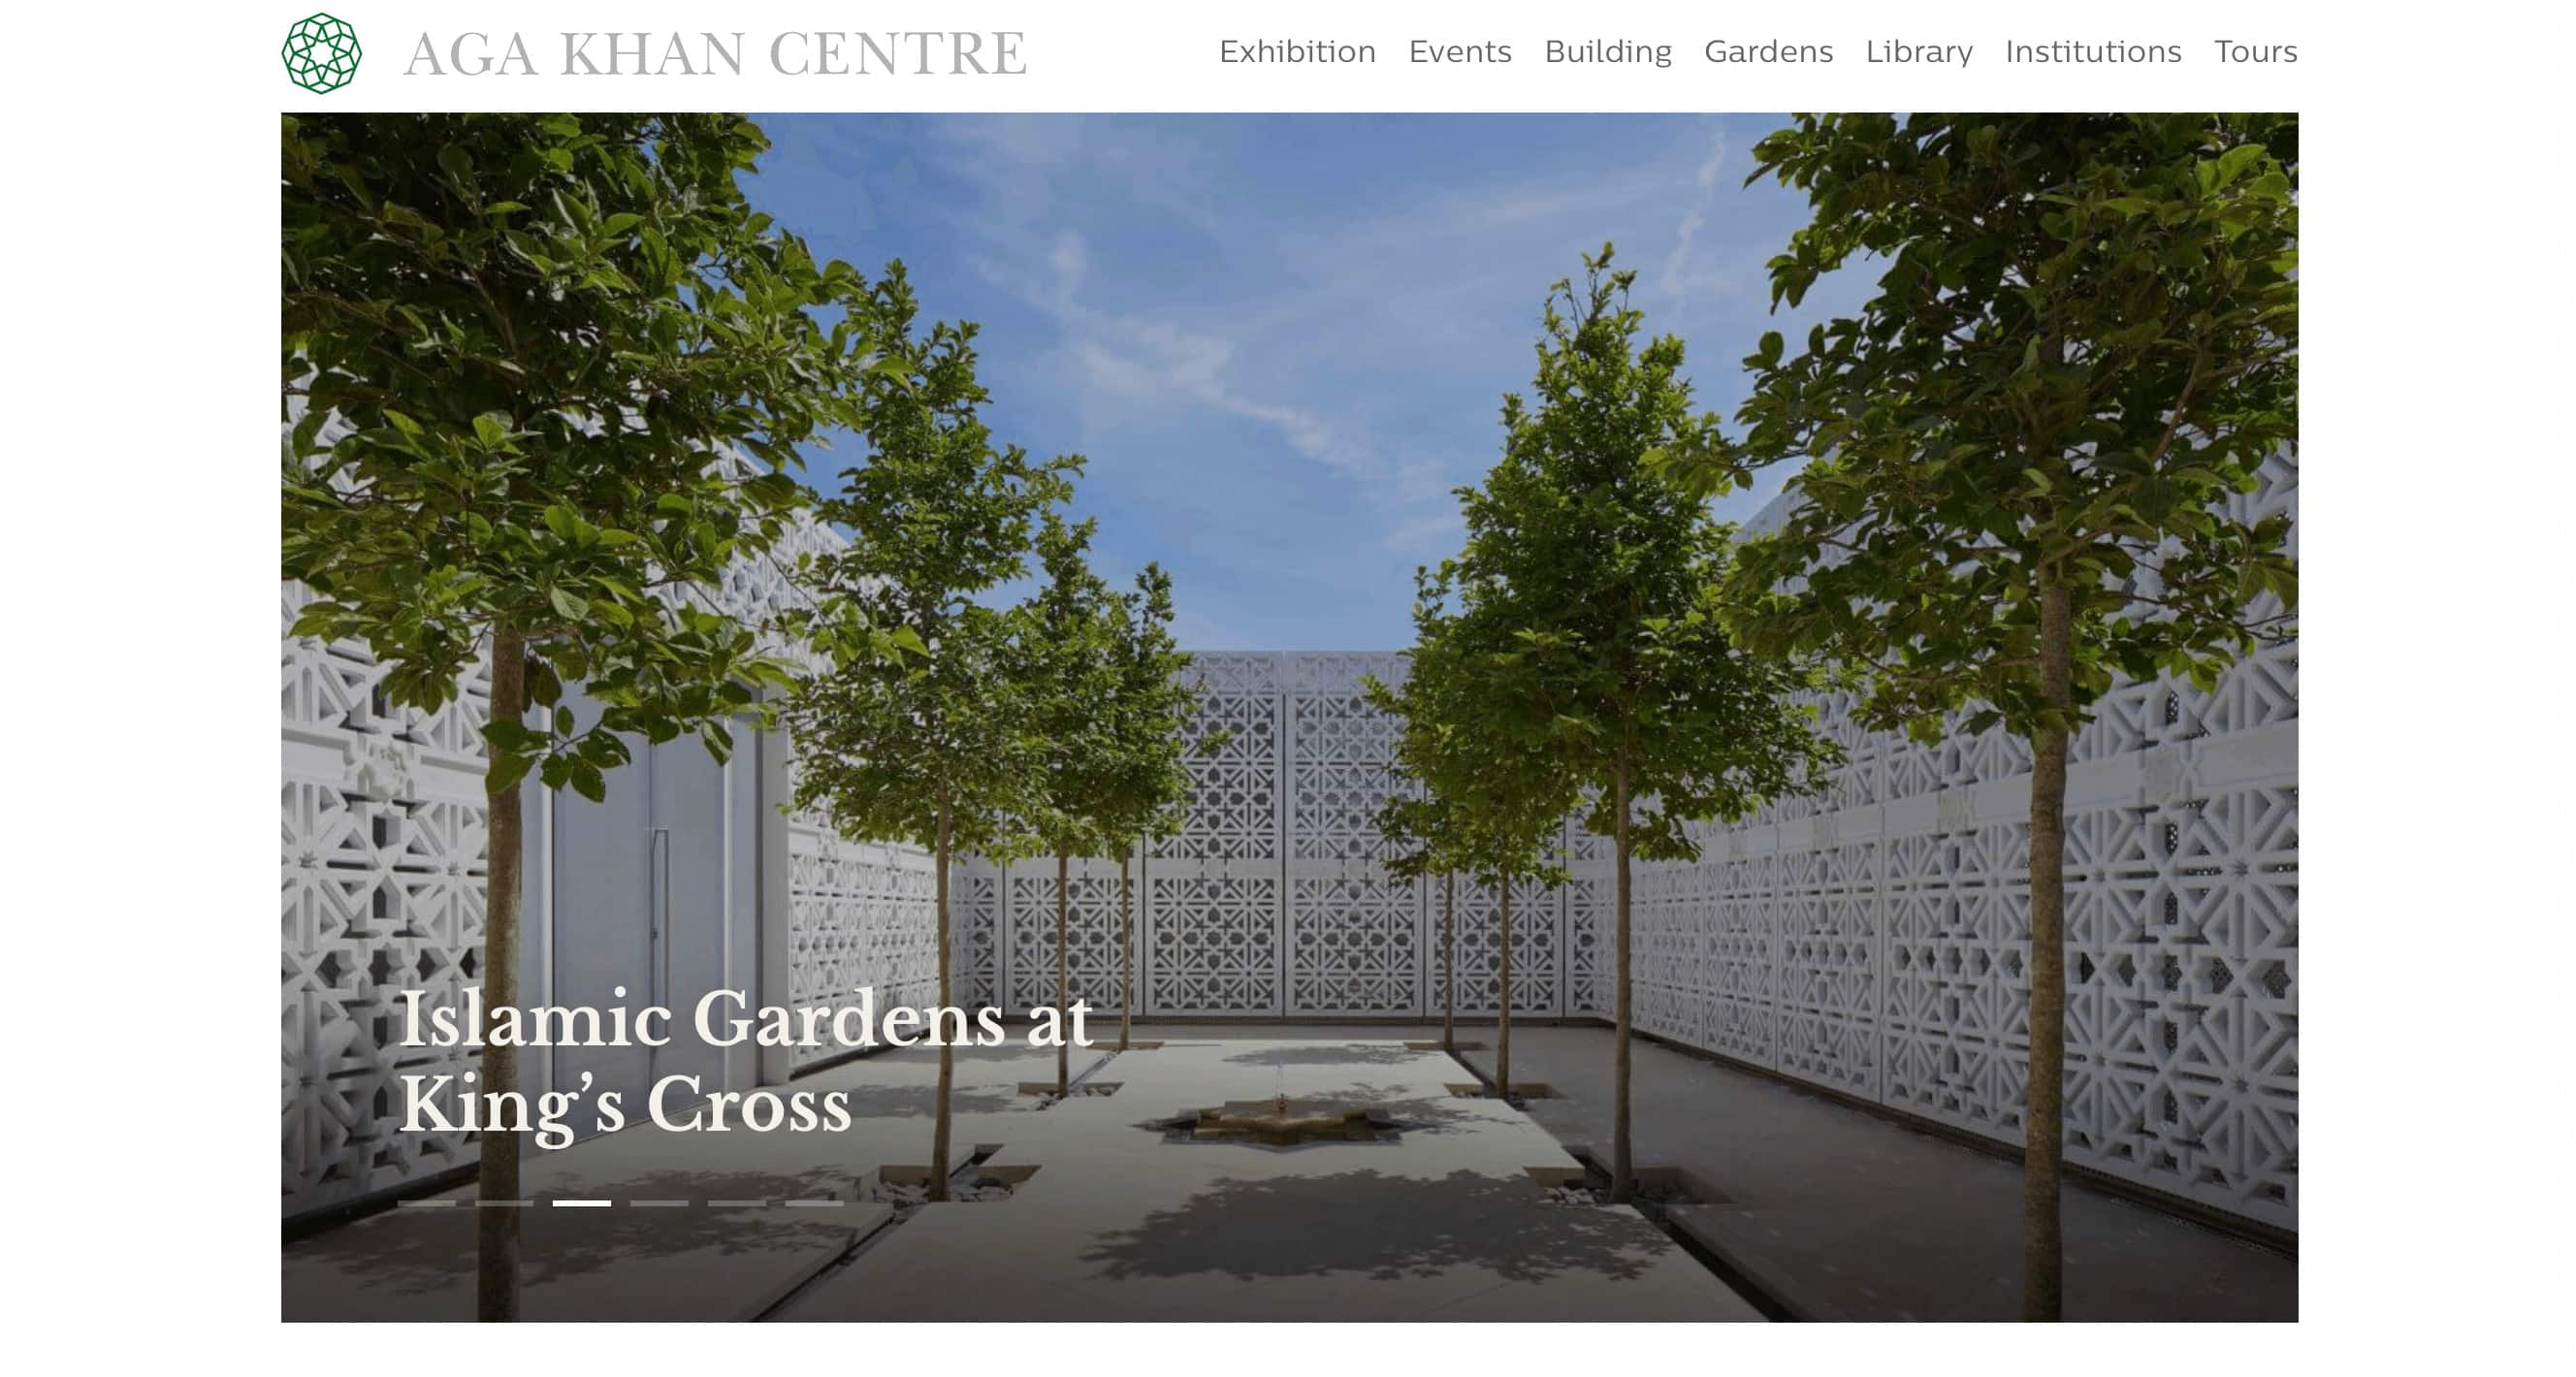 Homepage image, showing the main menu above an image of the Islamic gardens at the Aga Khan Centre